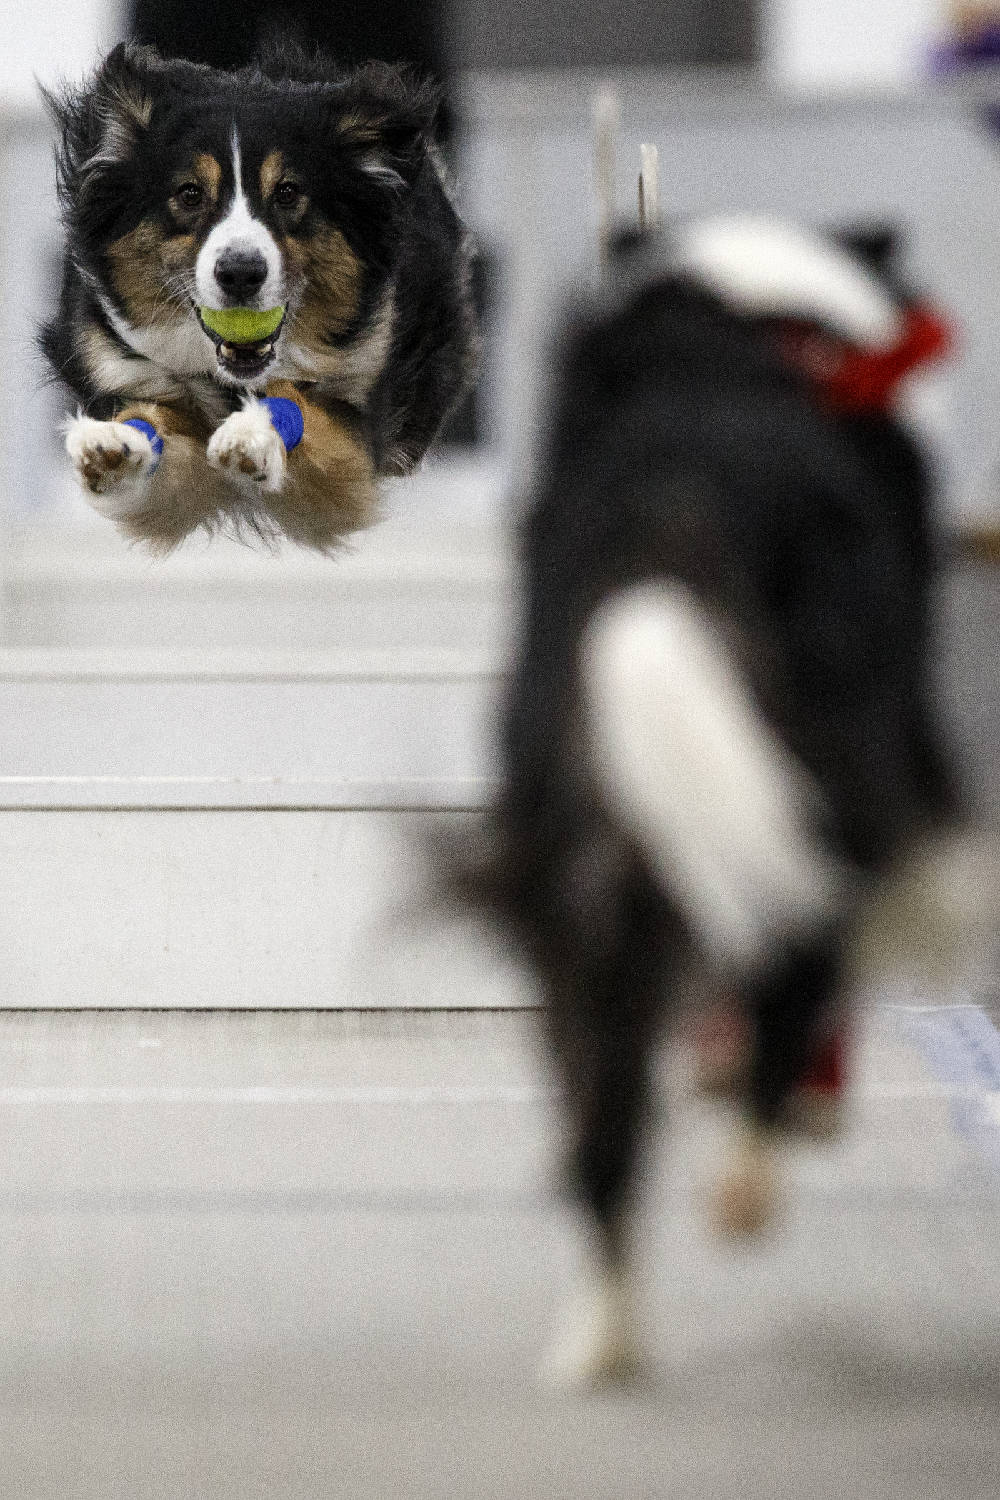 Photos Flyball Tournament Raises Funds For Humane